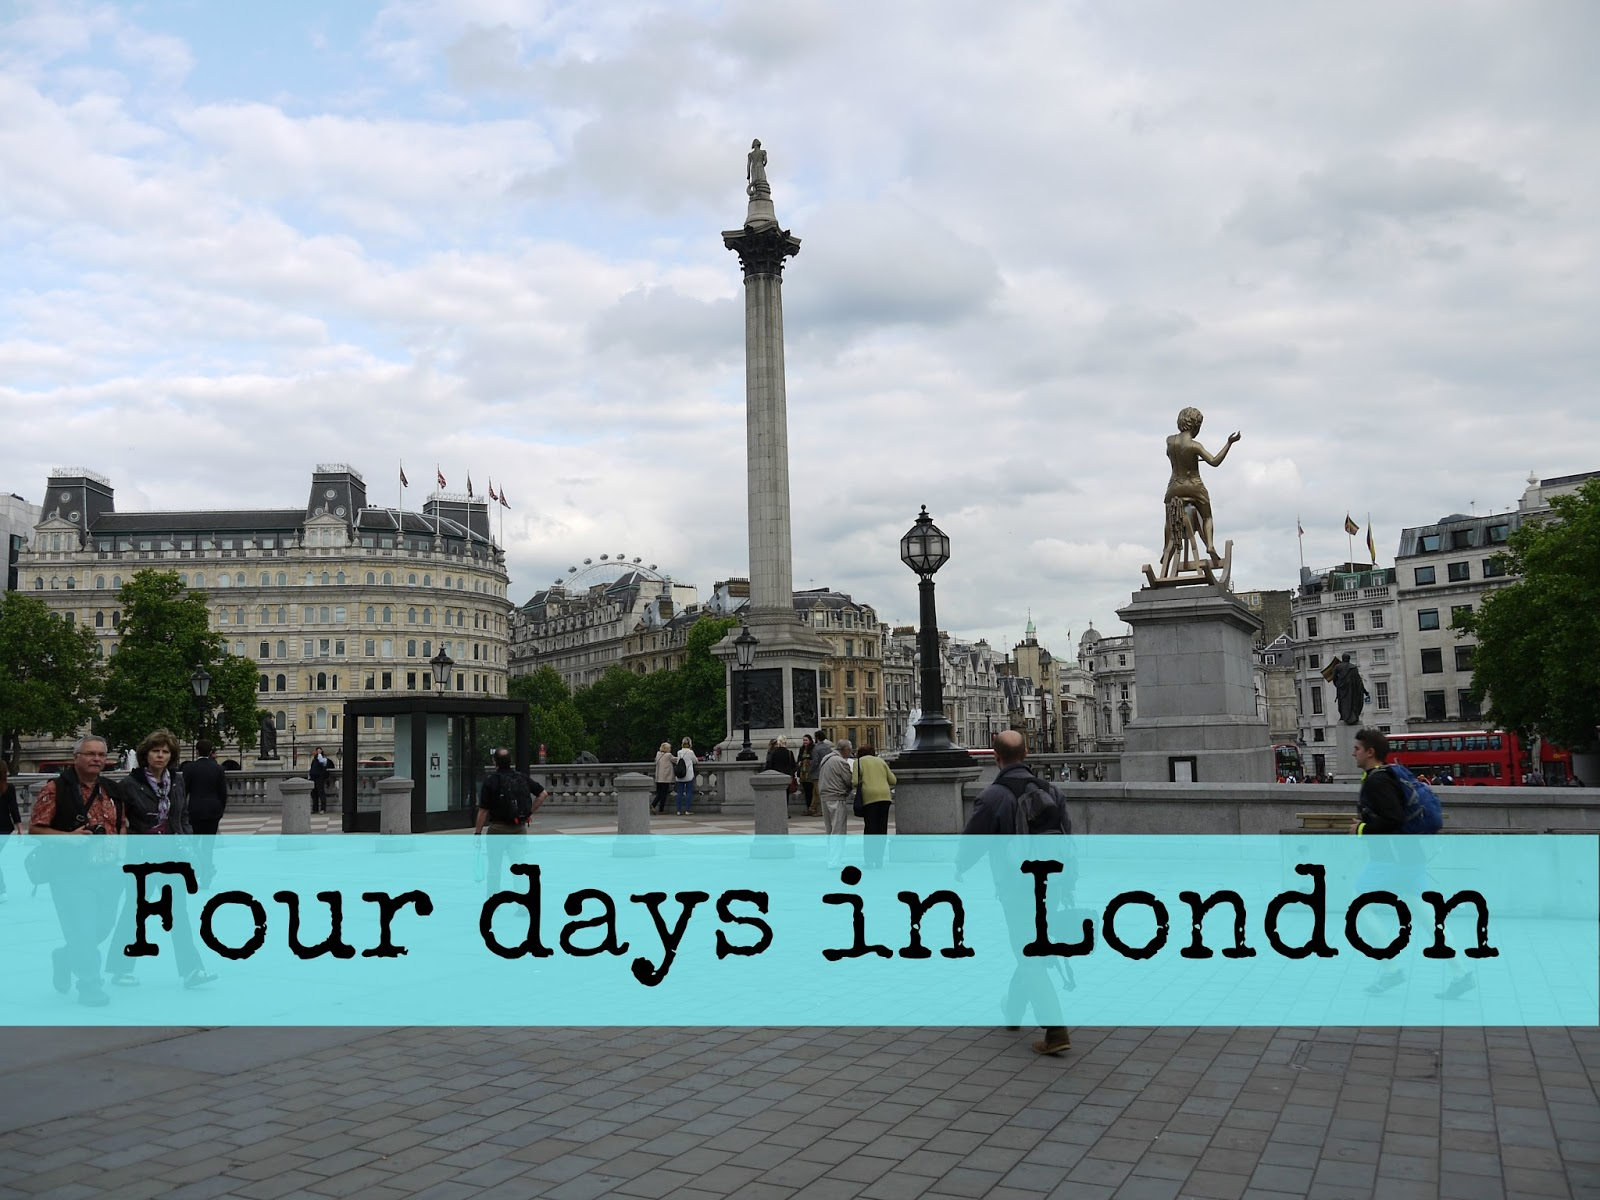 Four days in London